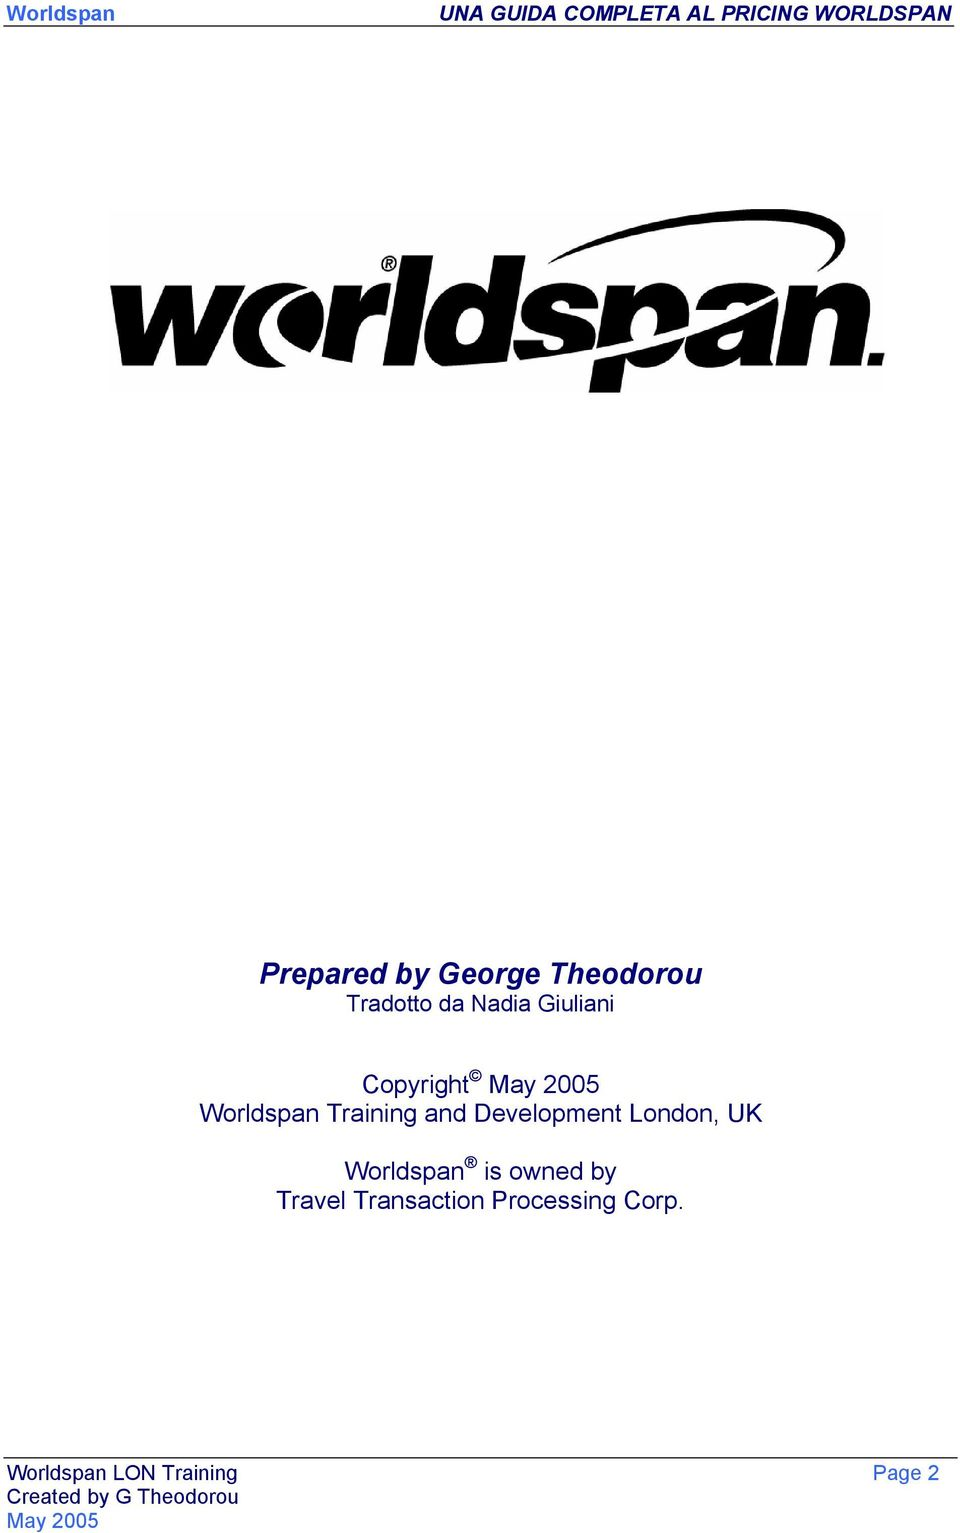 Development London, UK Worldspan is owned by